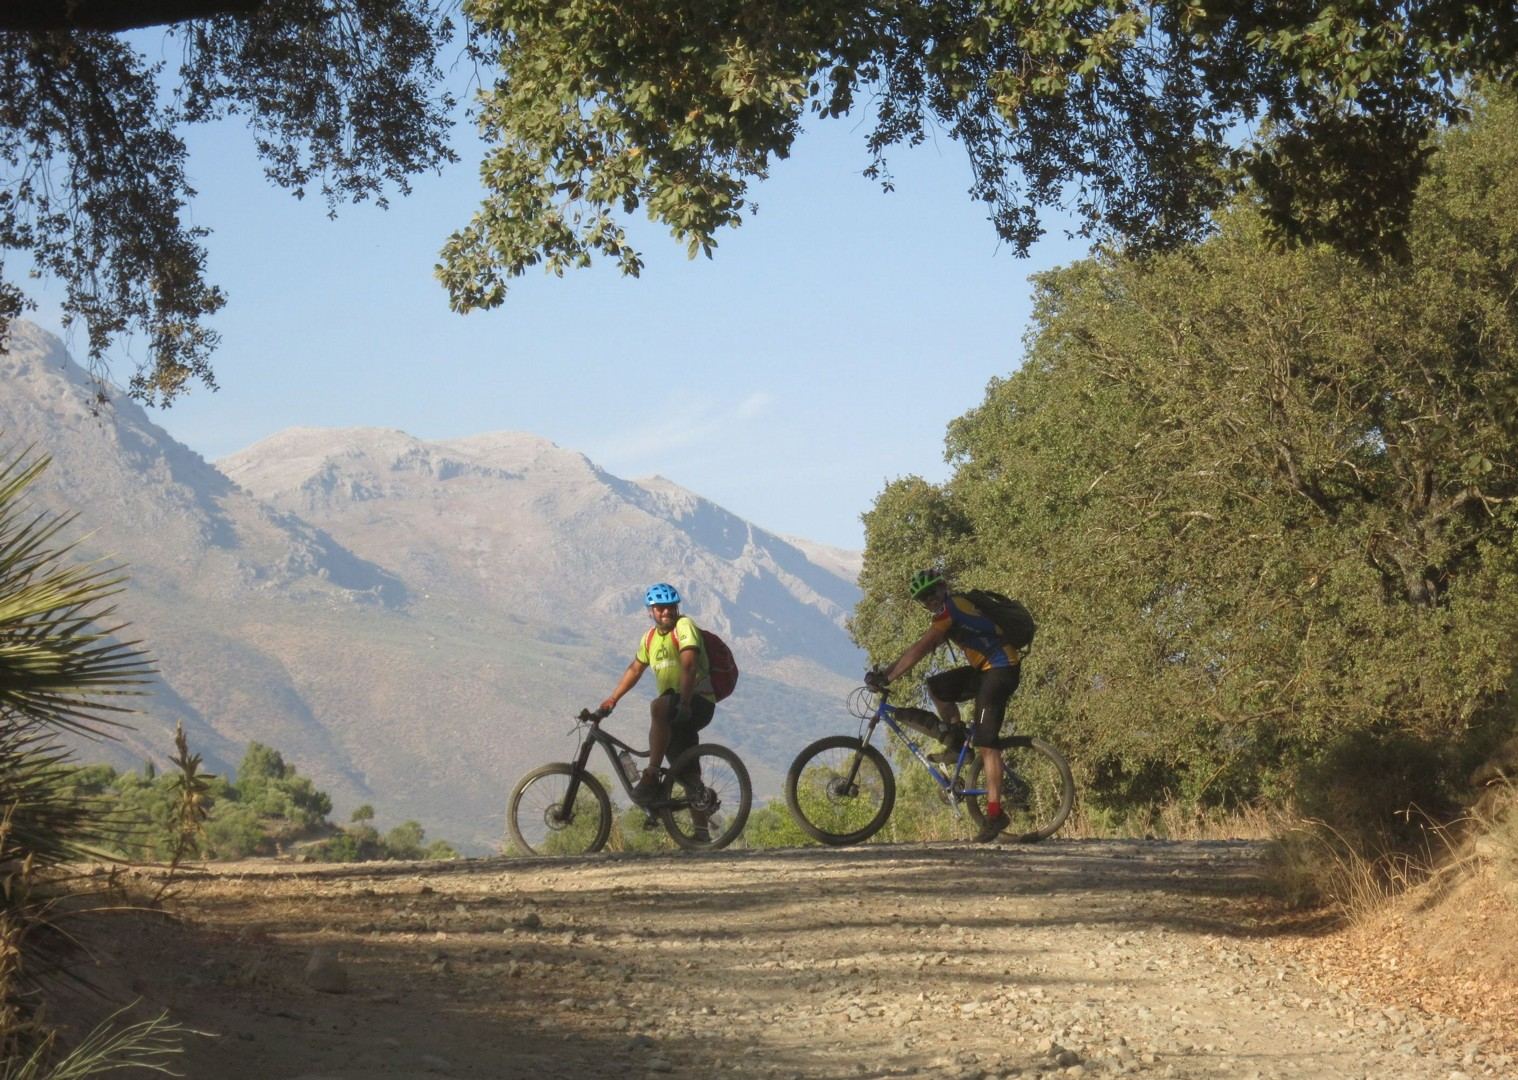 mountain-biking-holiday-in-spain-andalucia-mtb - Spain - Sensational Sierra Nevada - Guided Mountain Bike Holiday - Mountain Biking